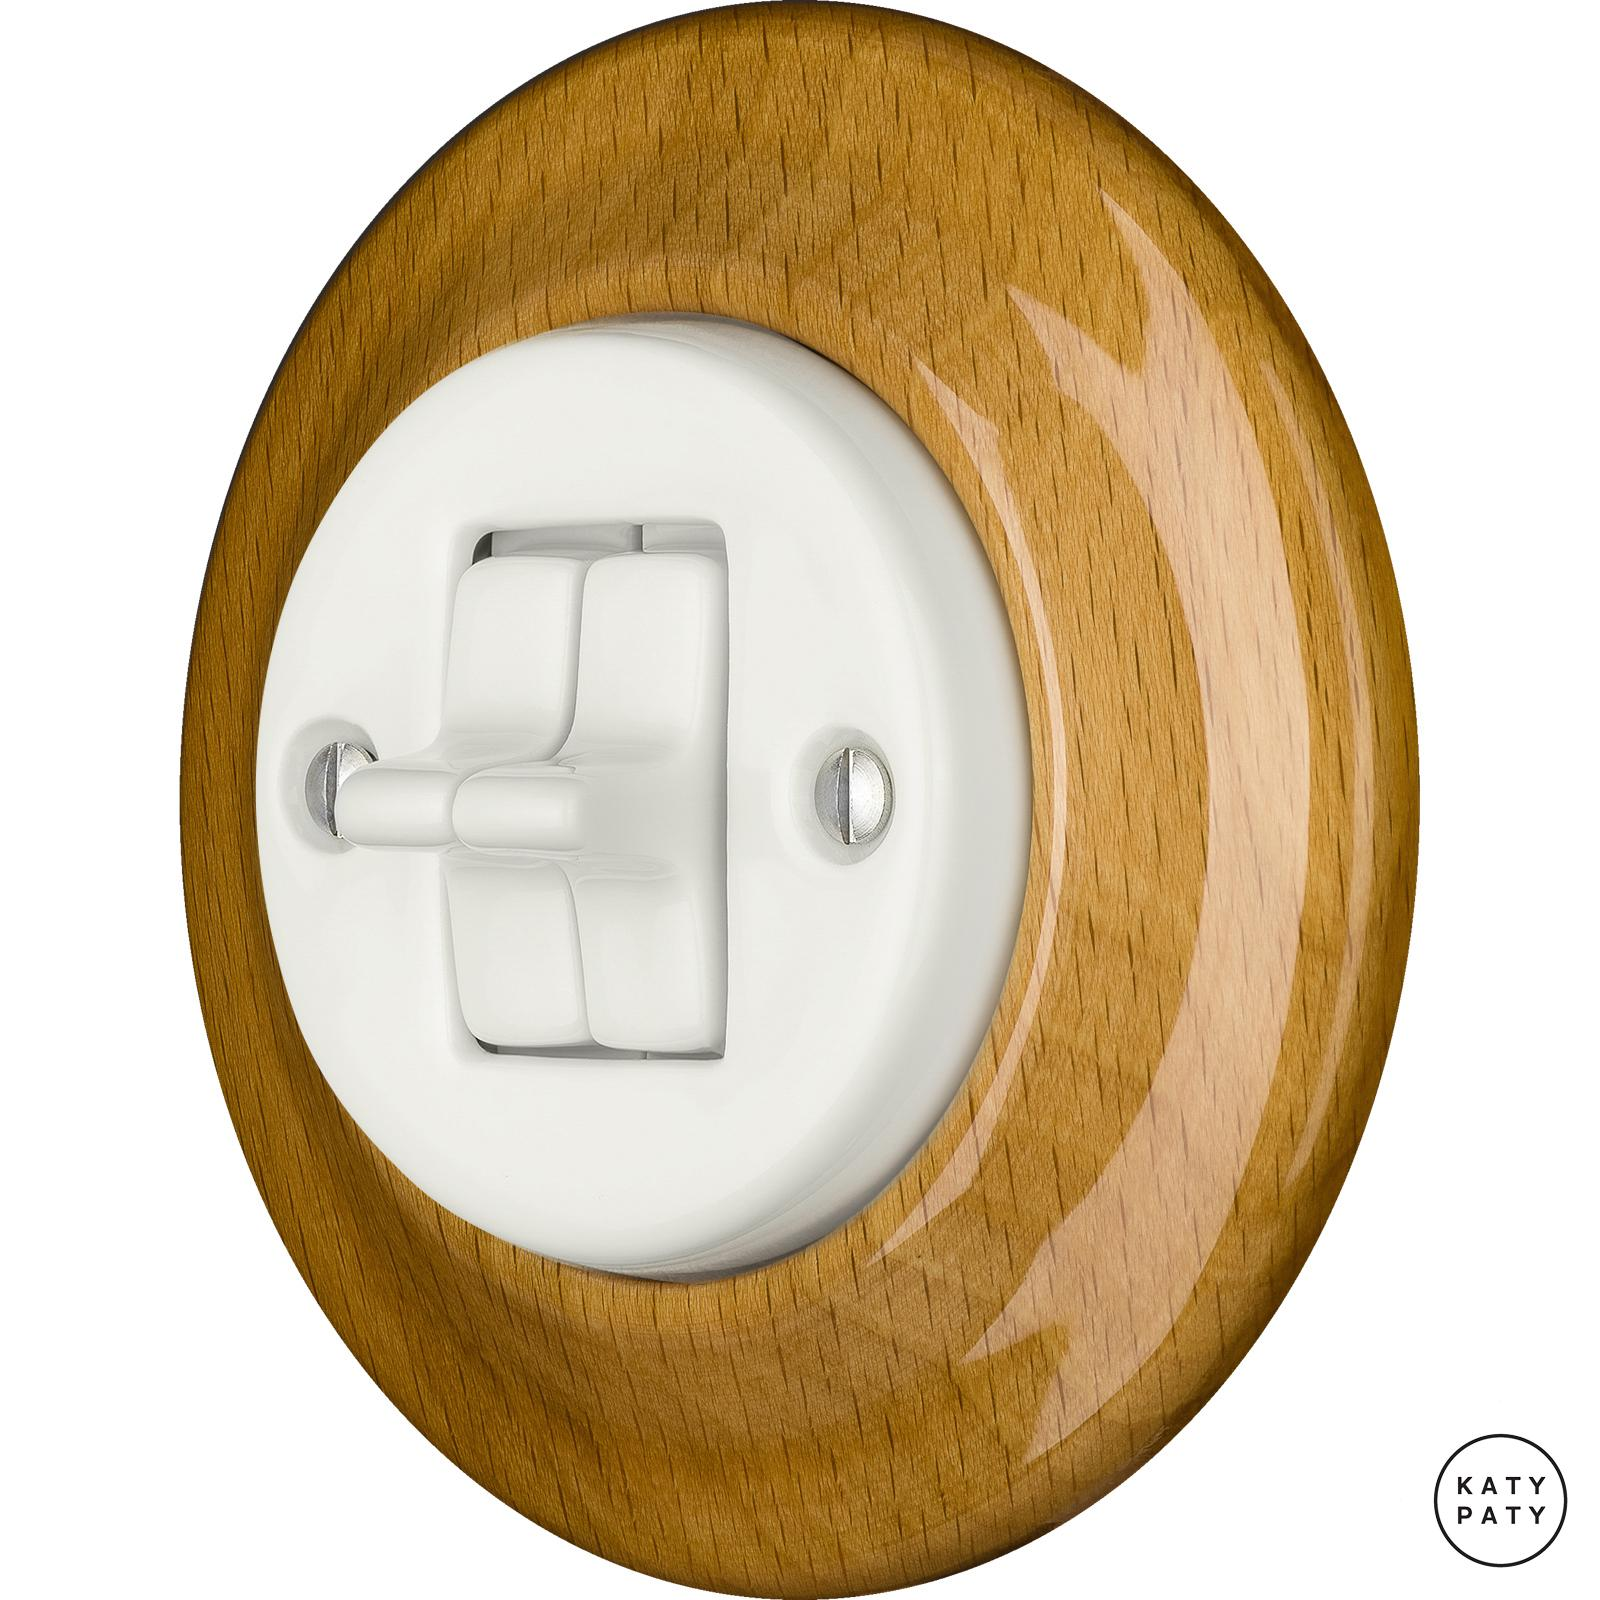 Porcelain toggle switches - a double gang ()  - FAGUS | Katy Paty